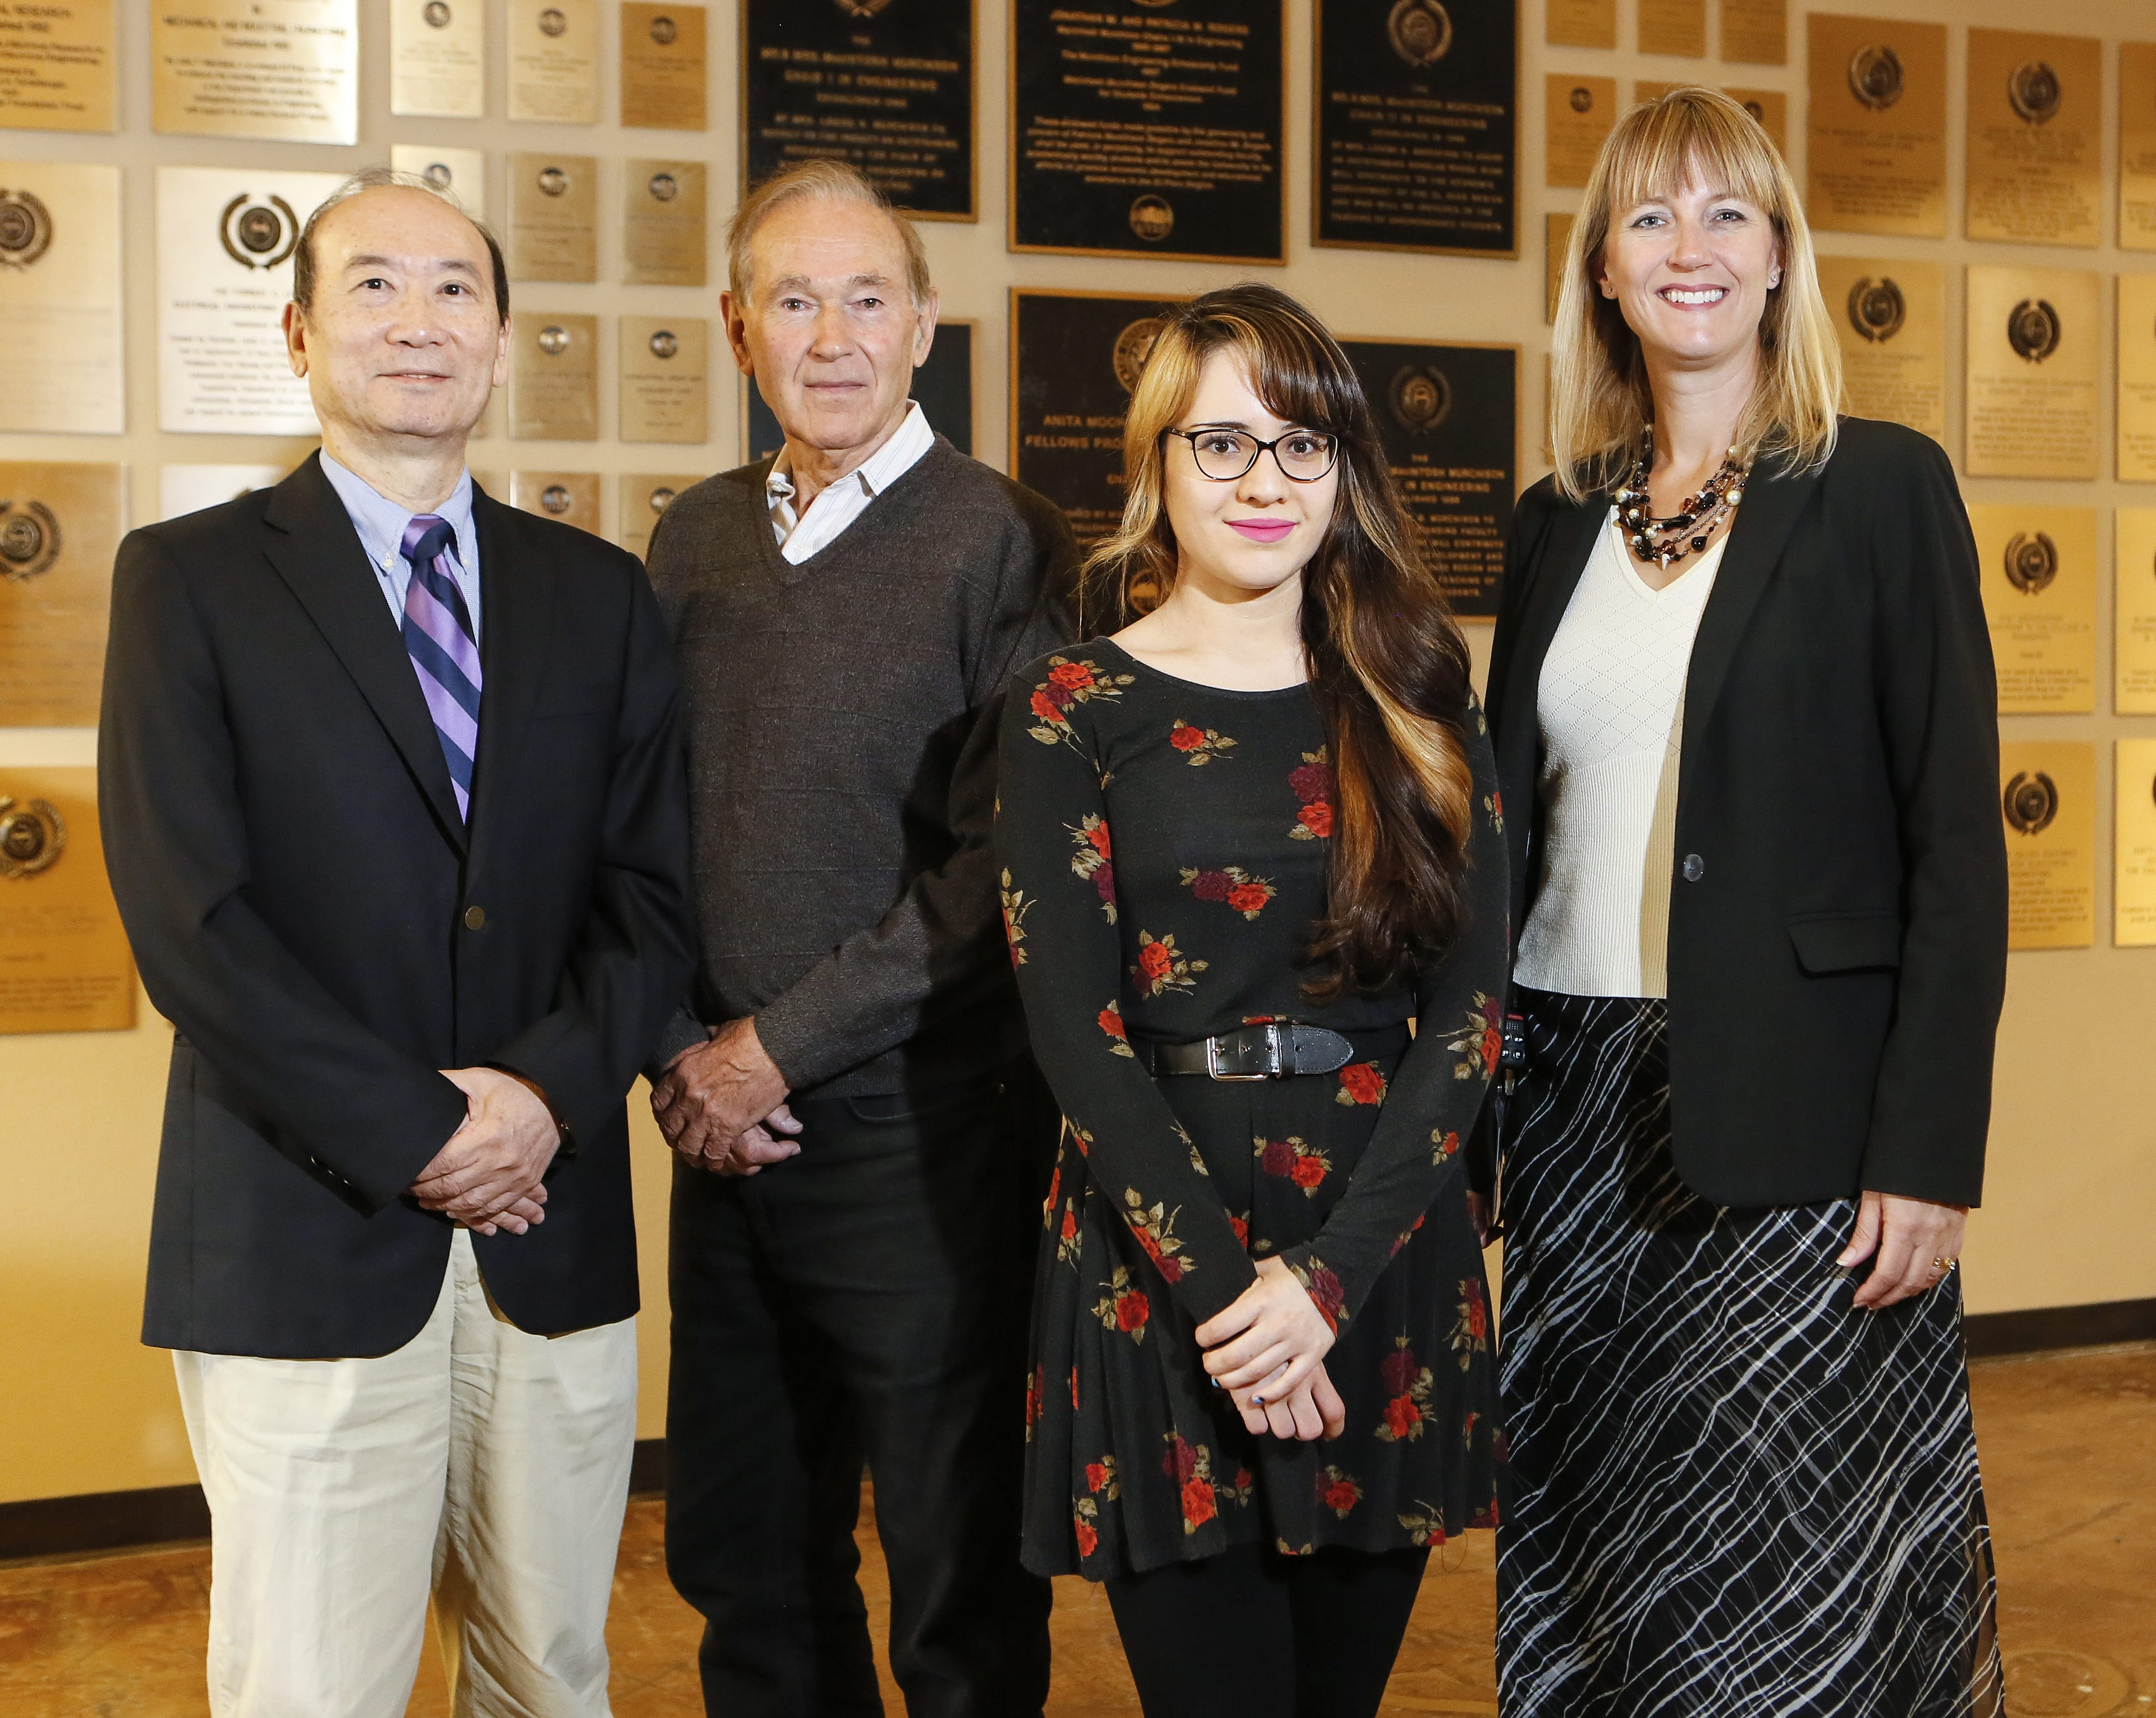 Dr. Wen-Whai Li, Dr. Anthony Tarquin, Mayra Chavez, and Dr. Leah Whigham.